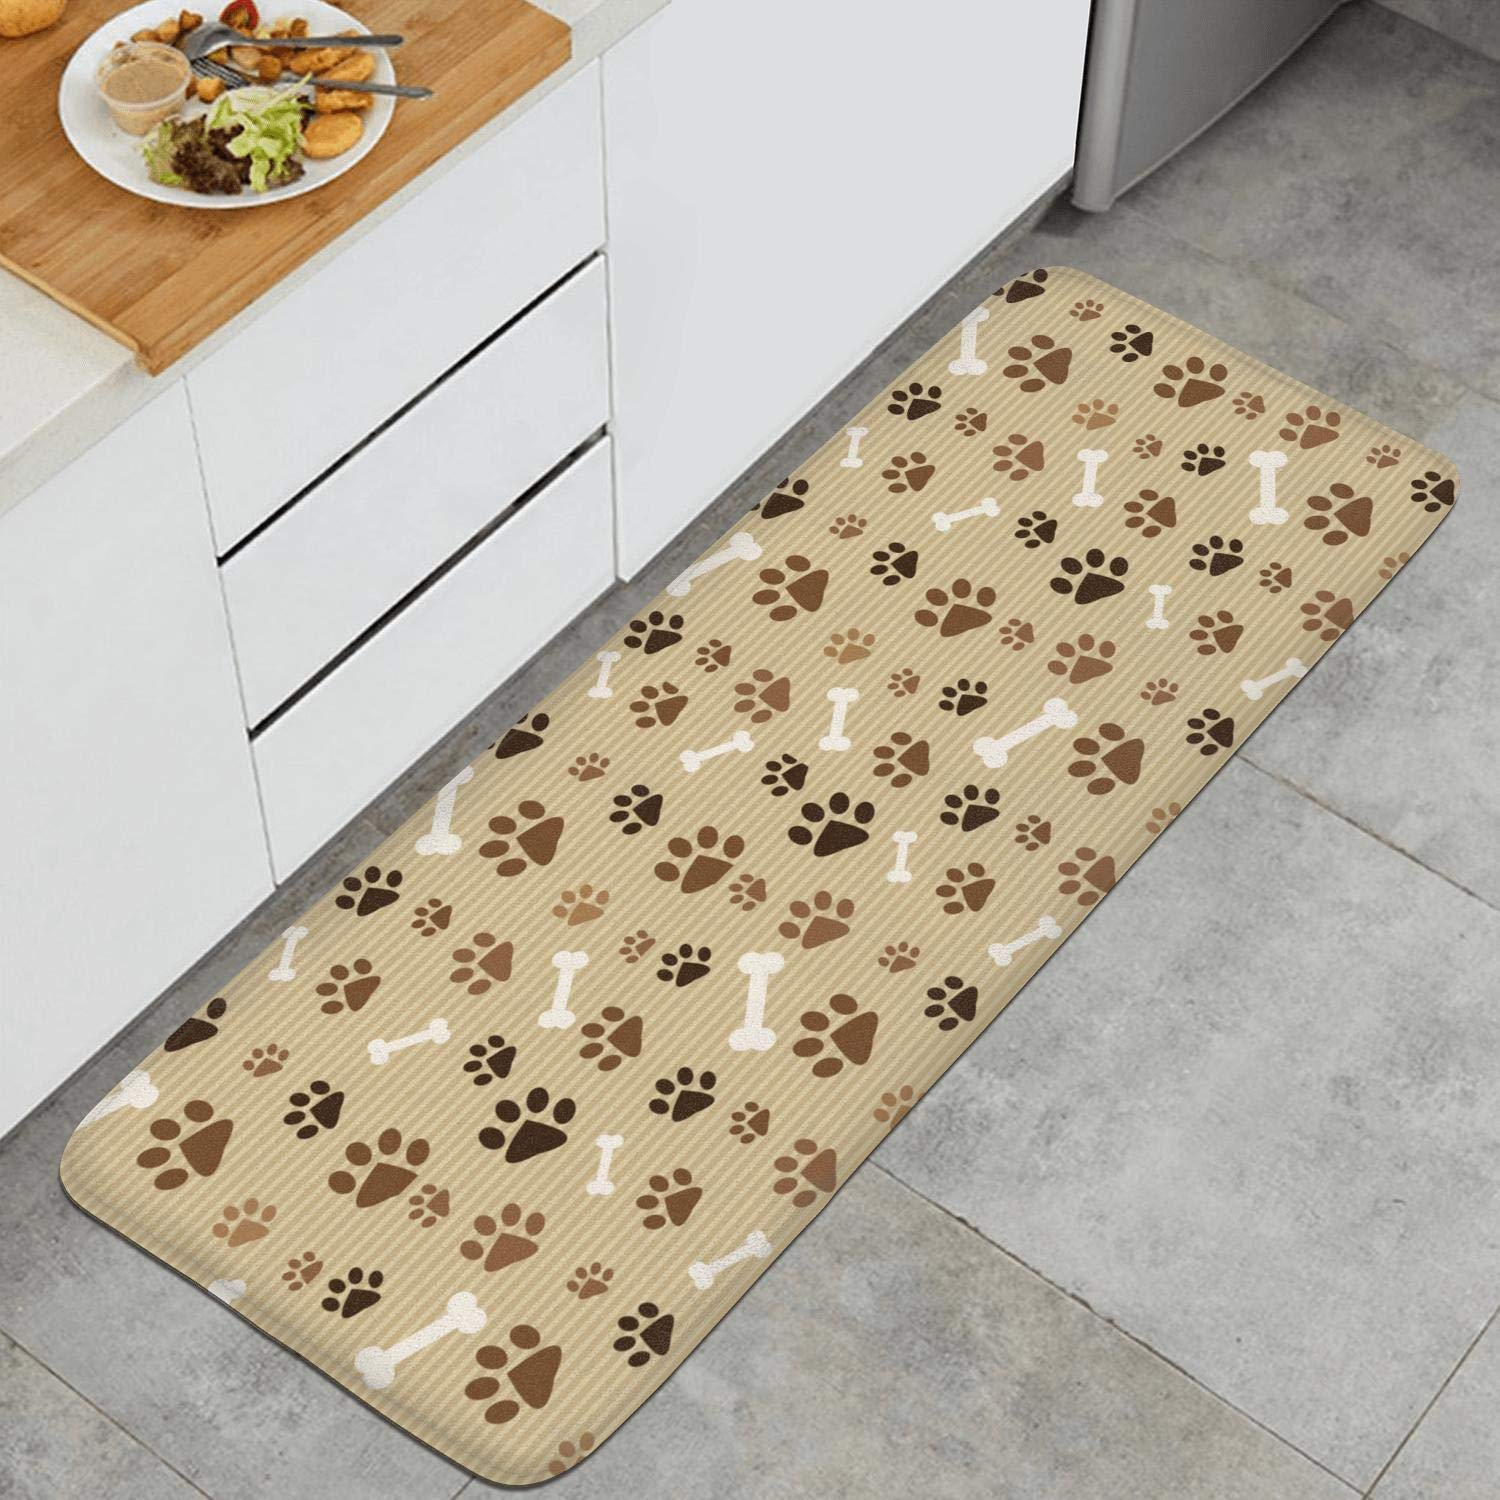 Amazon.com : GTWEWR Dog Paw Prints Striped Brown Bone Floor ...